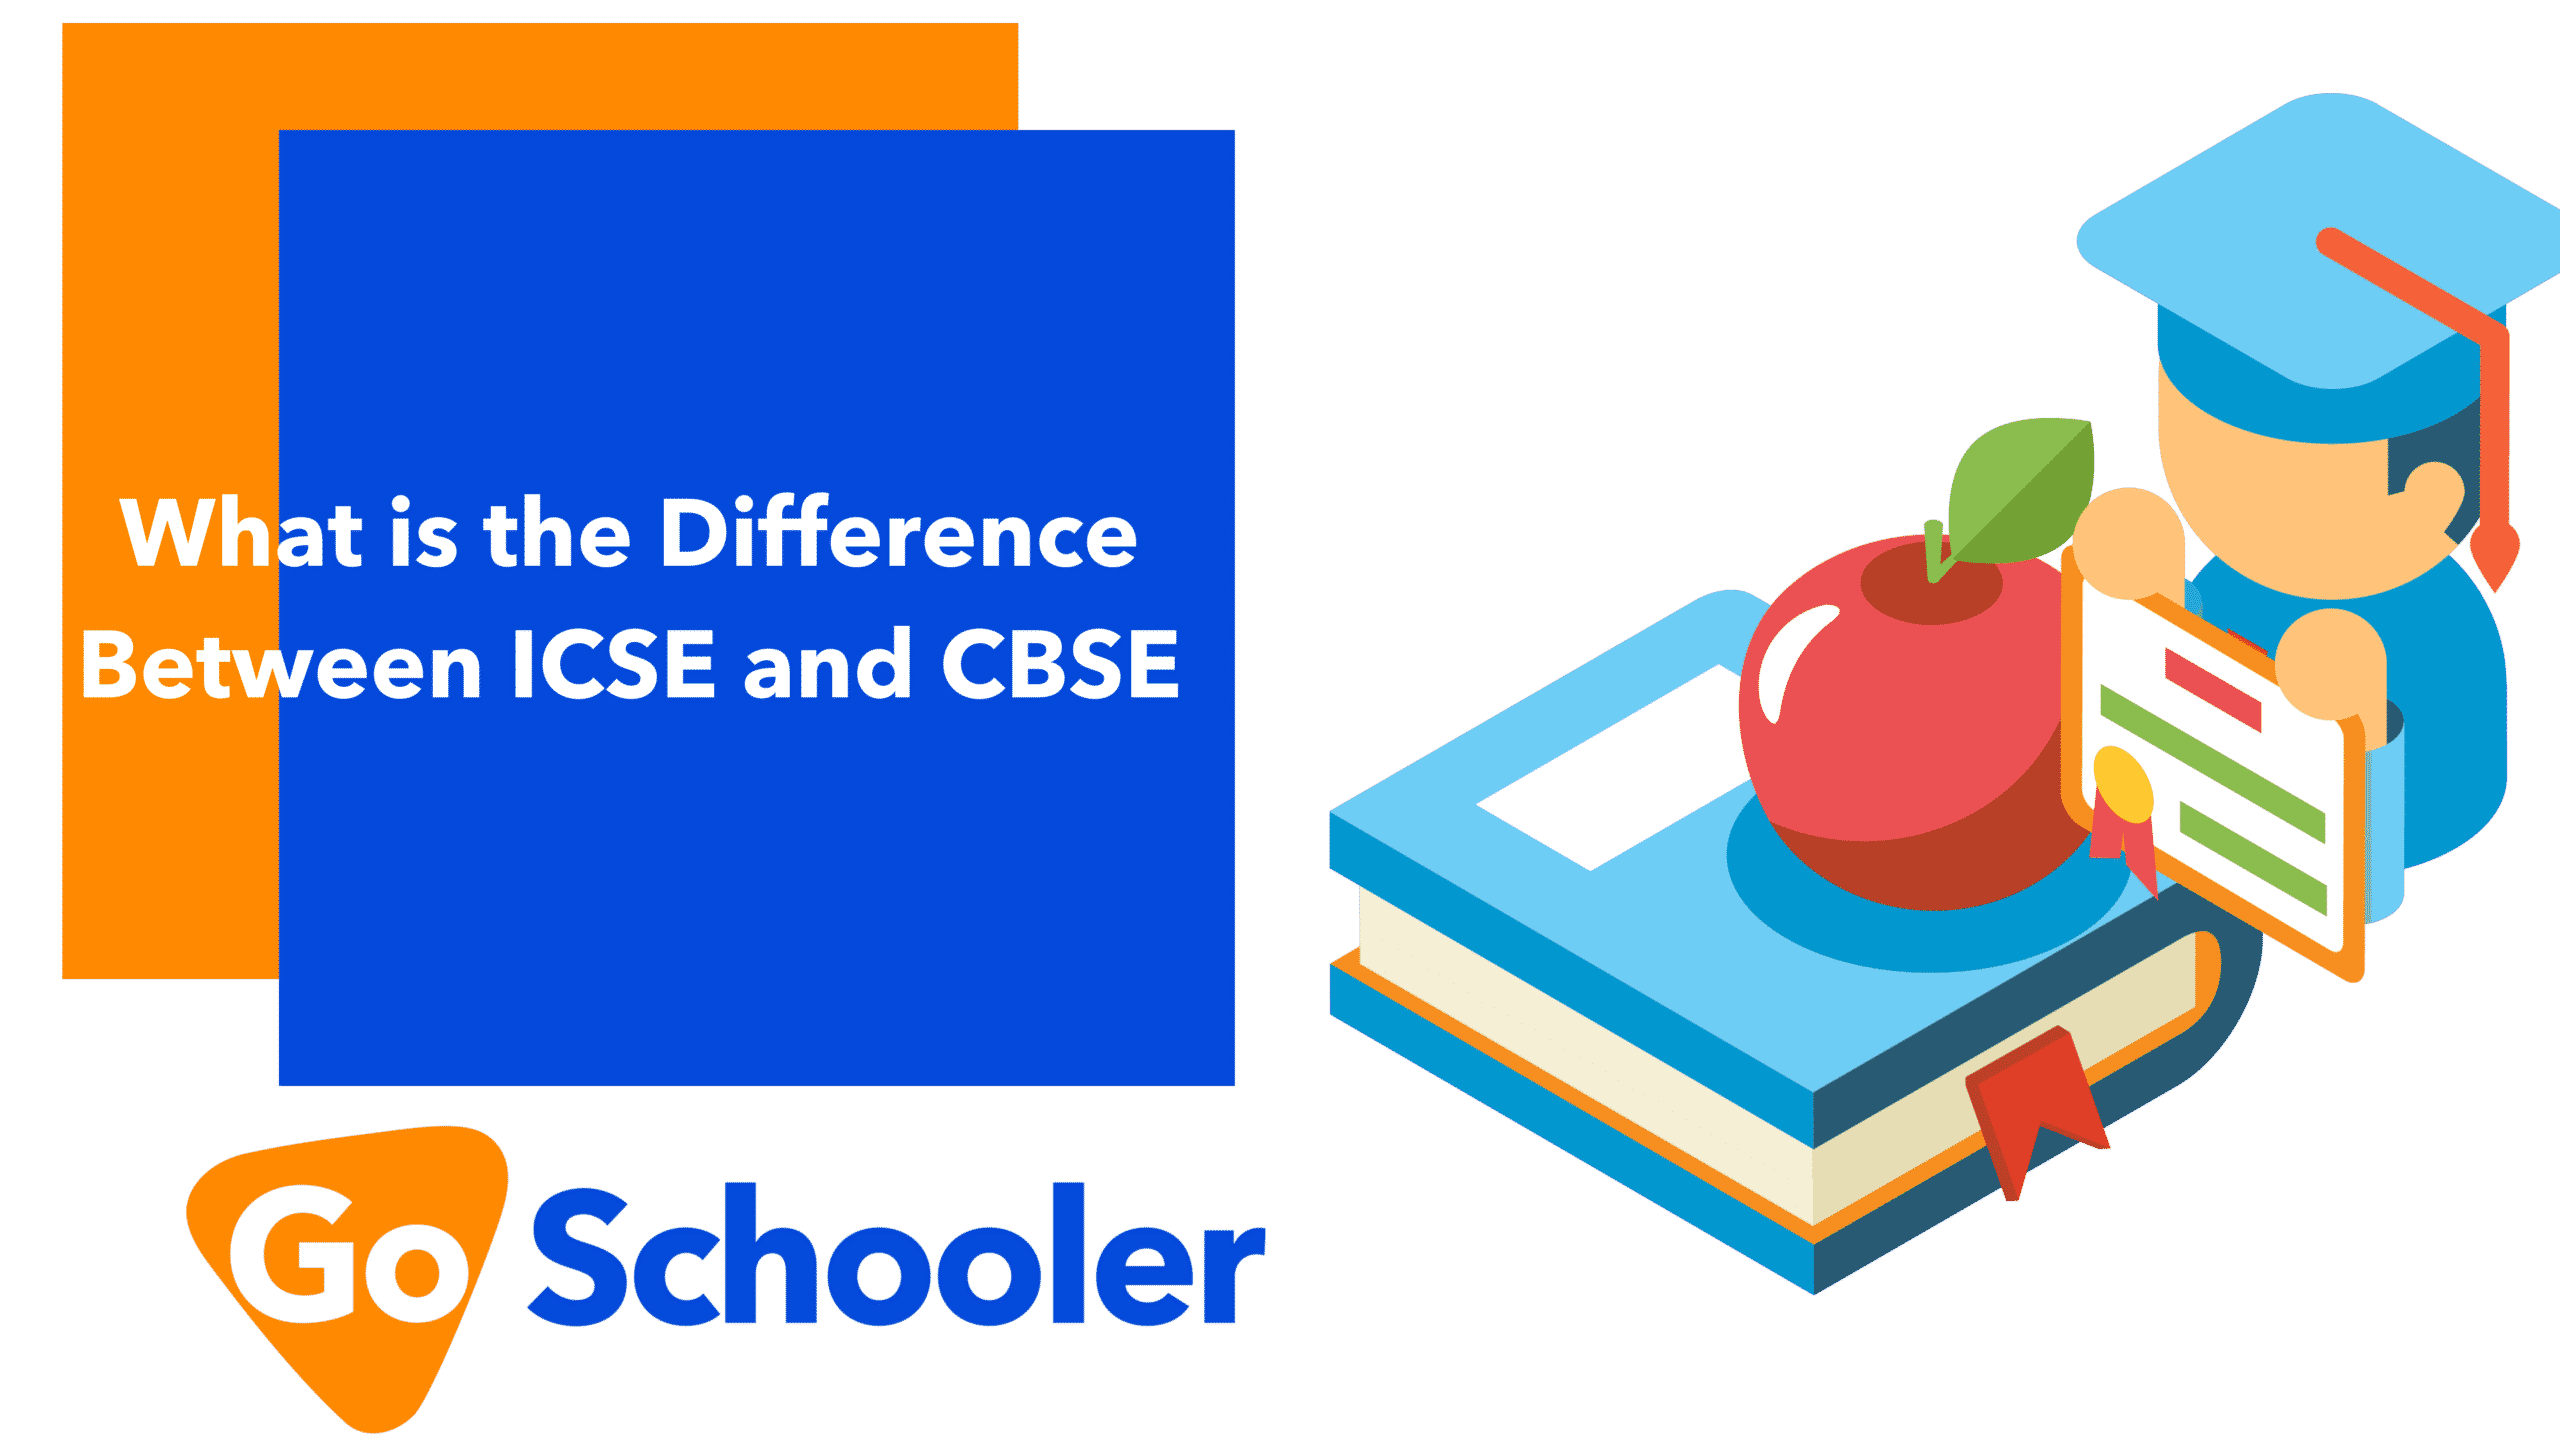 What is the Difference Between ICSE and CBSE